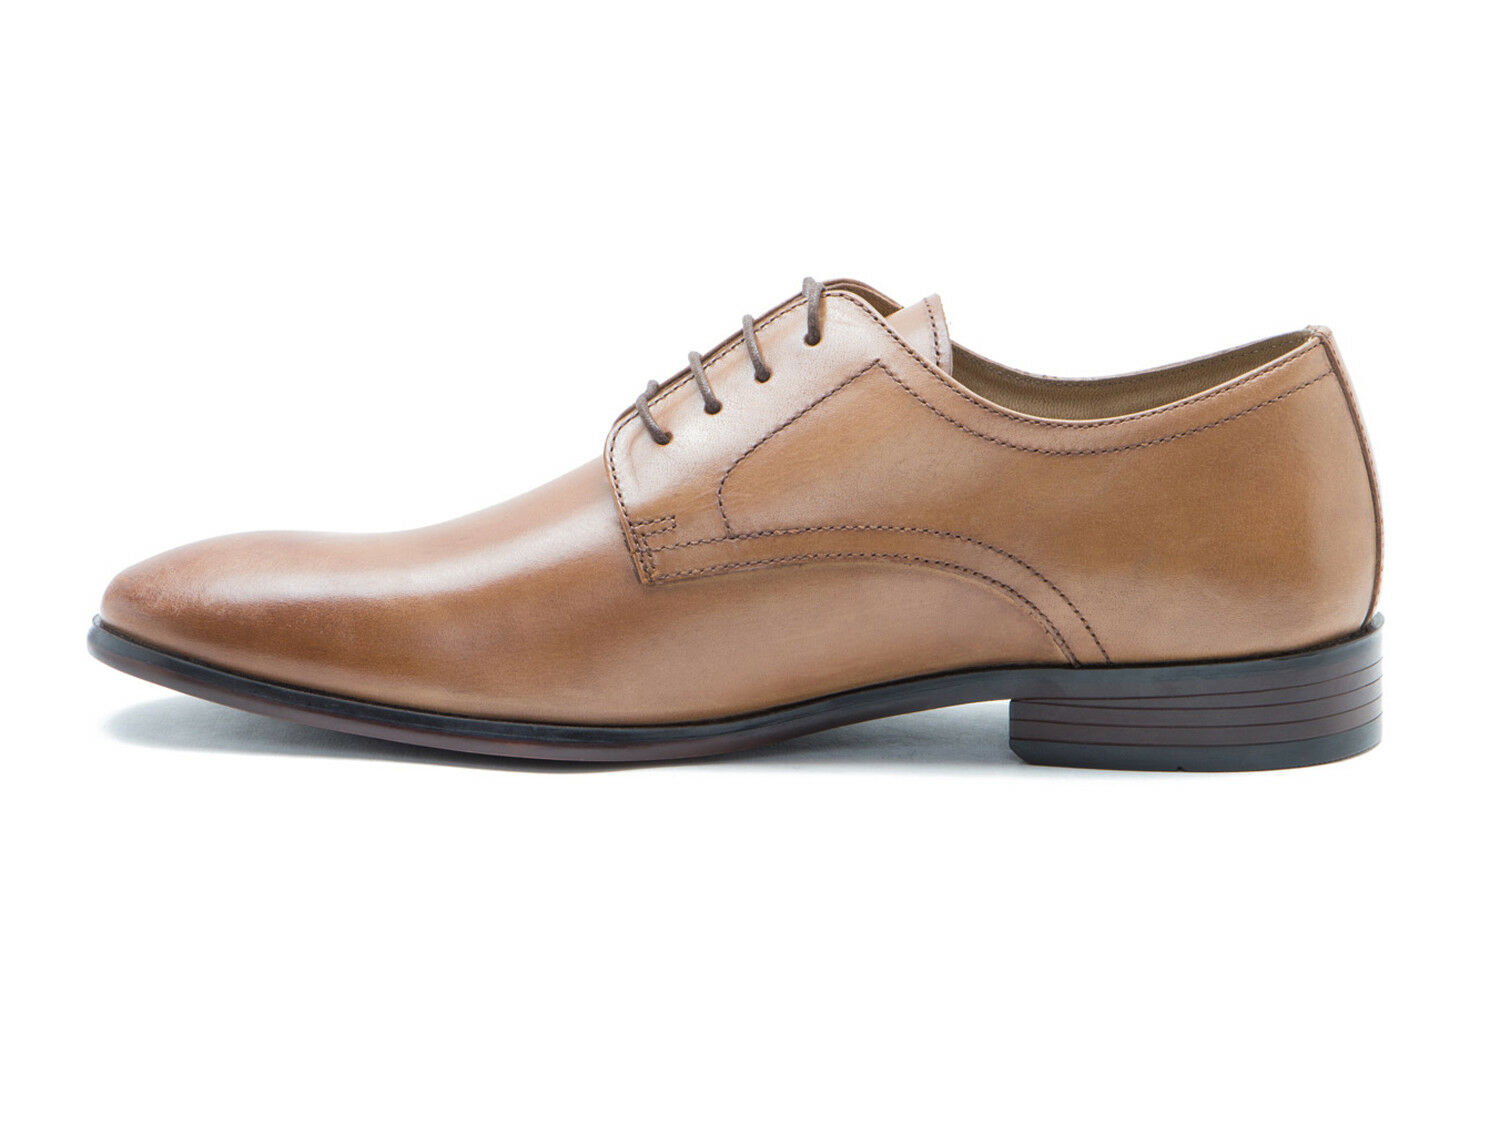 Red Tape Silwood Brown Leather Mens Formal Derby Shoes Free UK P/&P RRP £45!